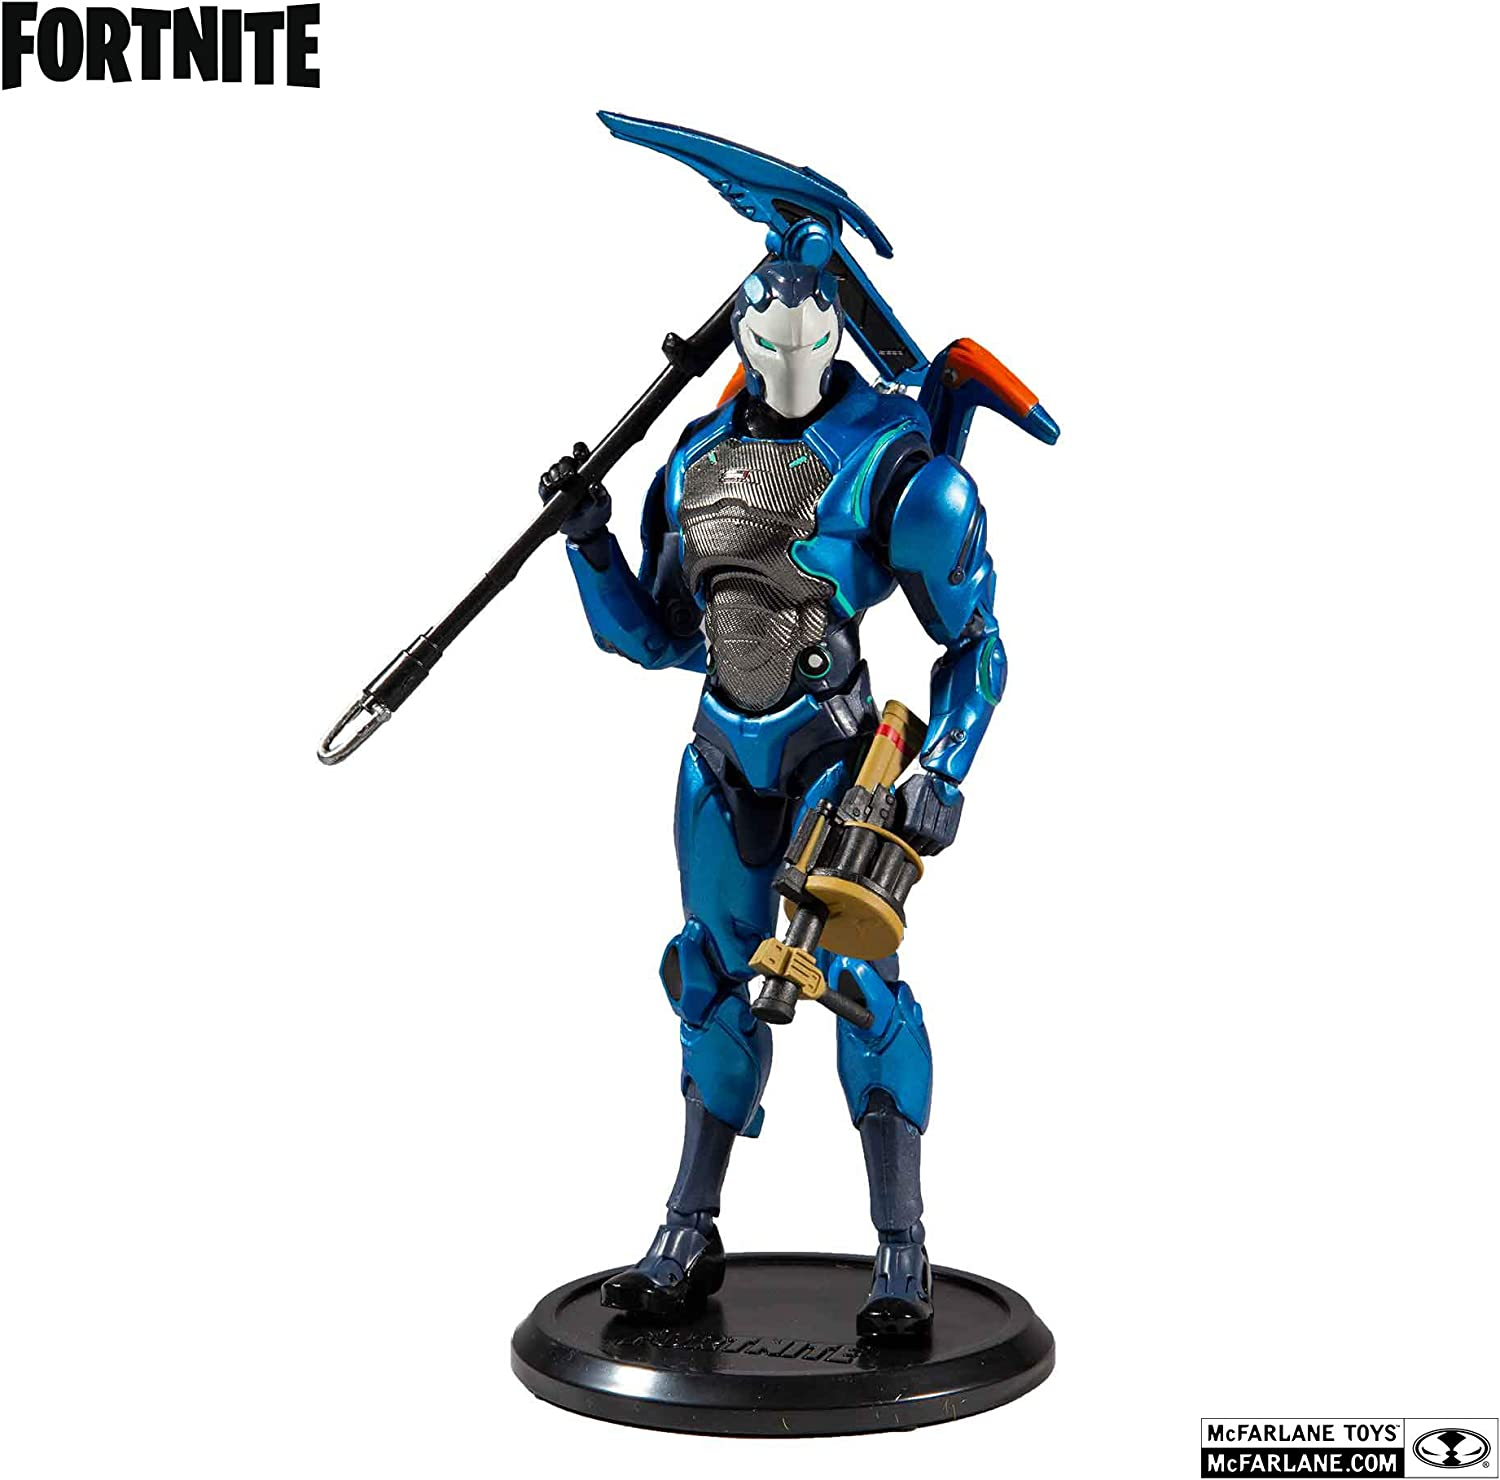 Pyramid International- Fortnite Figura articulada Carburo, Multicolor (MCF10608-4)